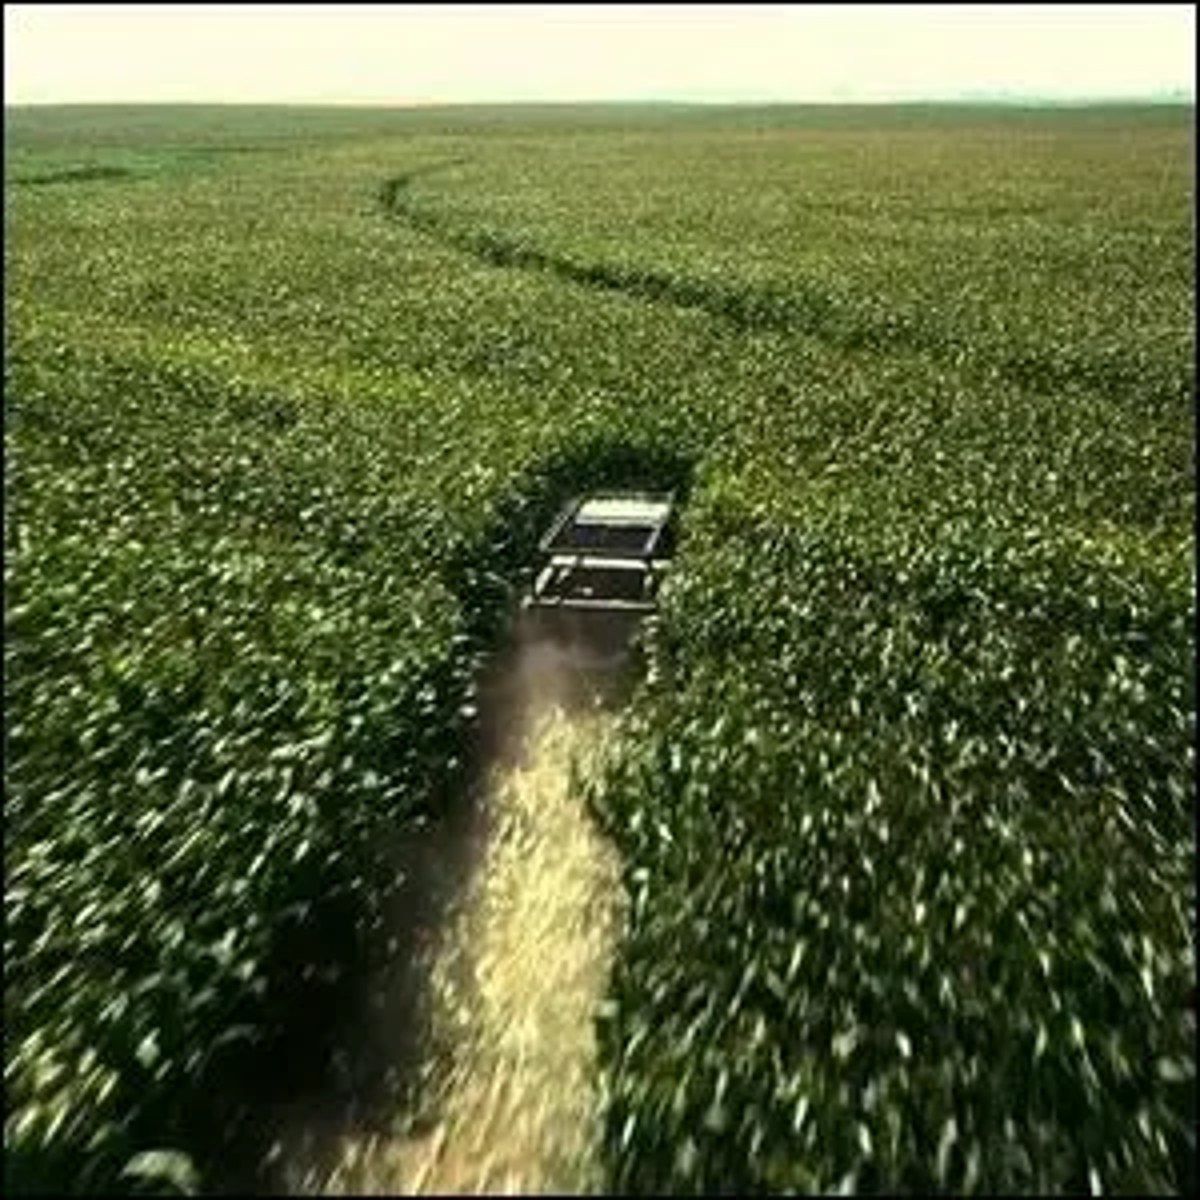 A farm vehicle driving through a field of corn in the movie Interstellar.